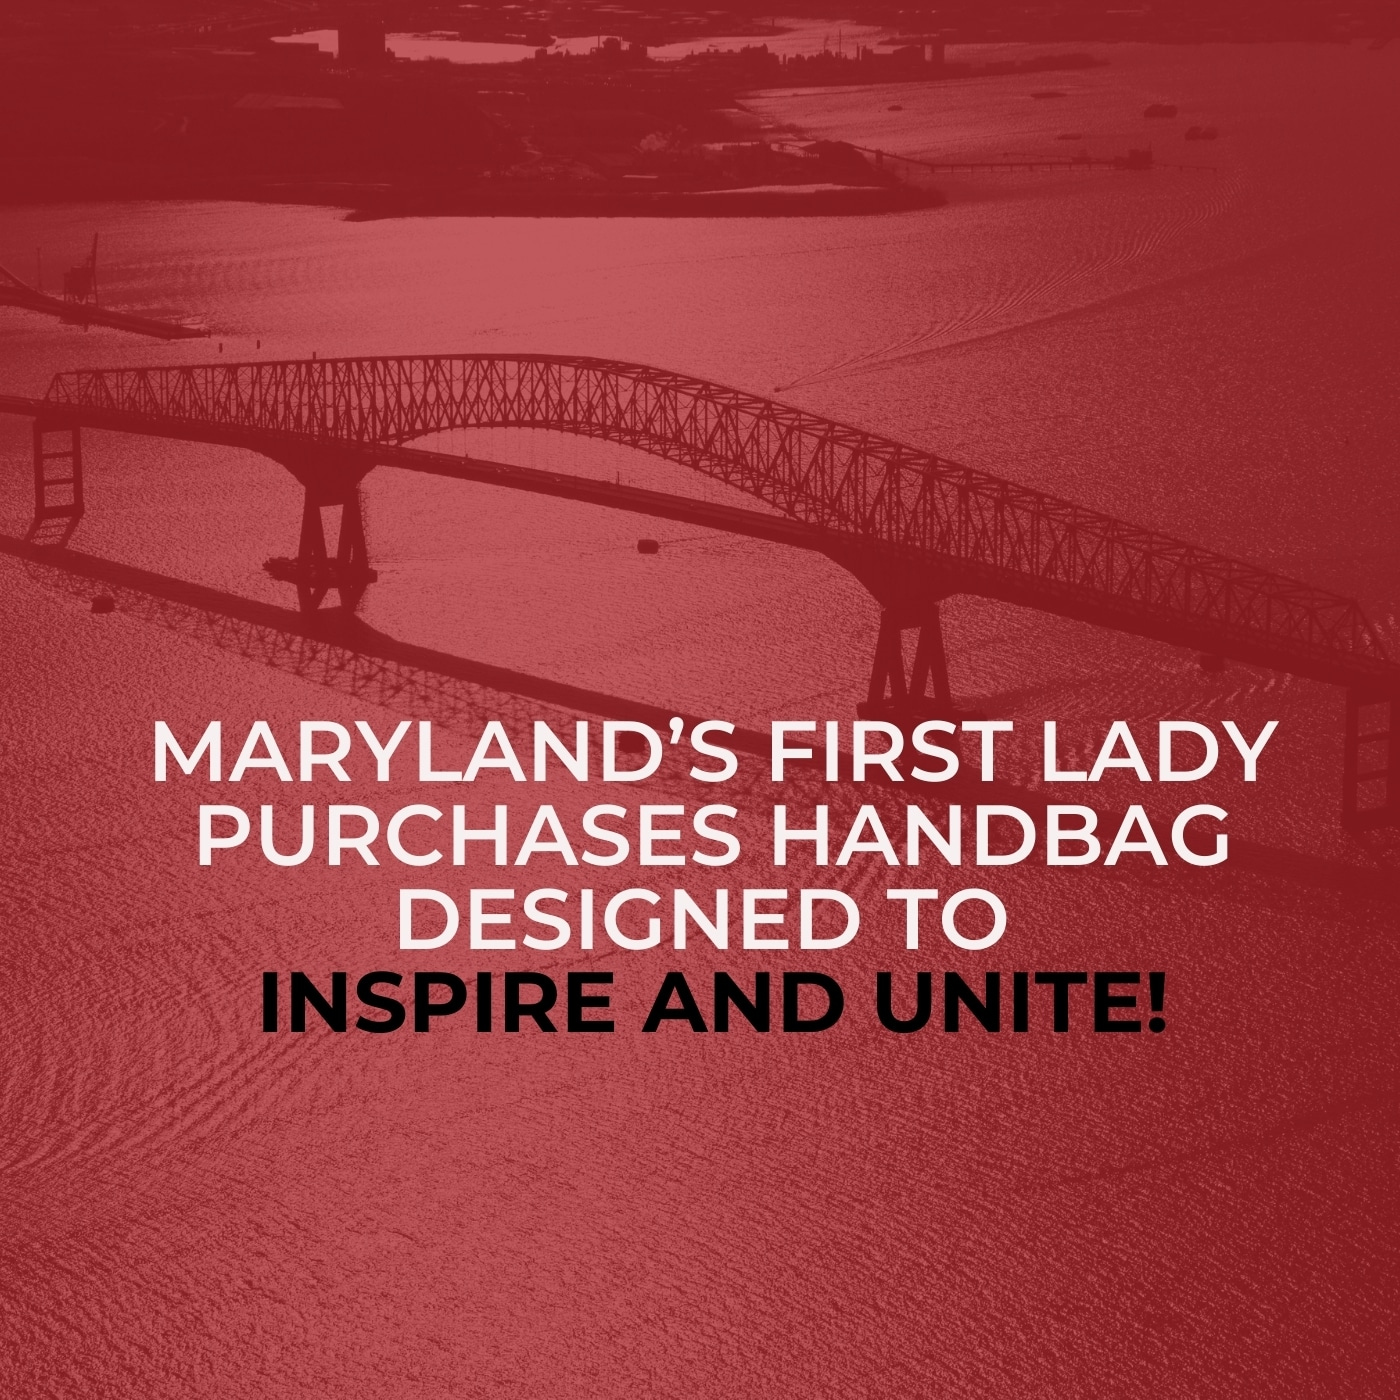 Maryland's First Lady Purchases Handbag Designed to Inspire and Unite!